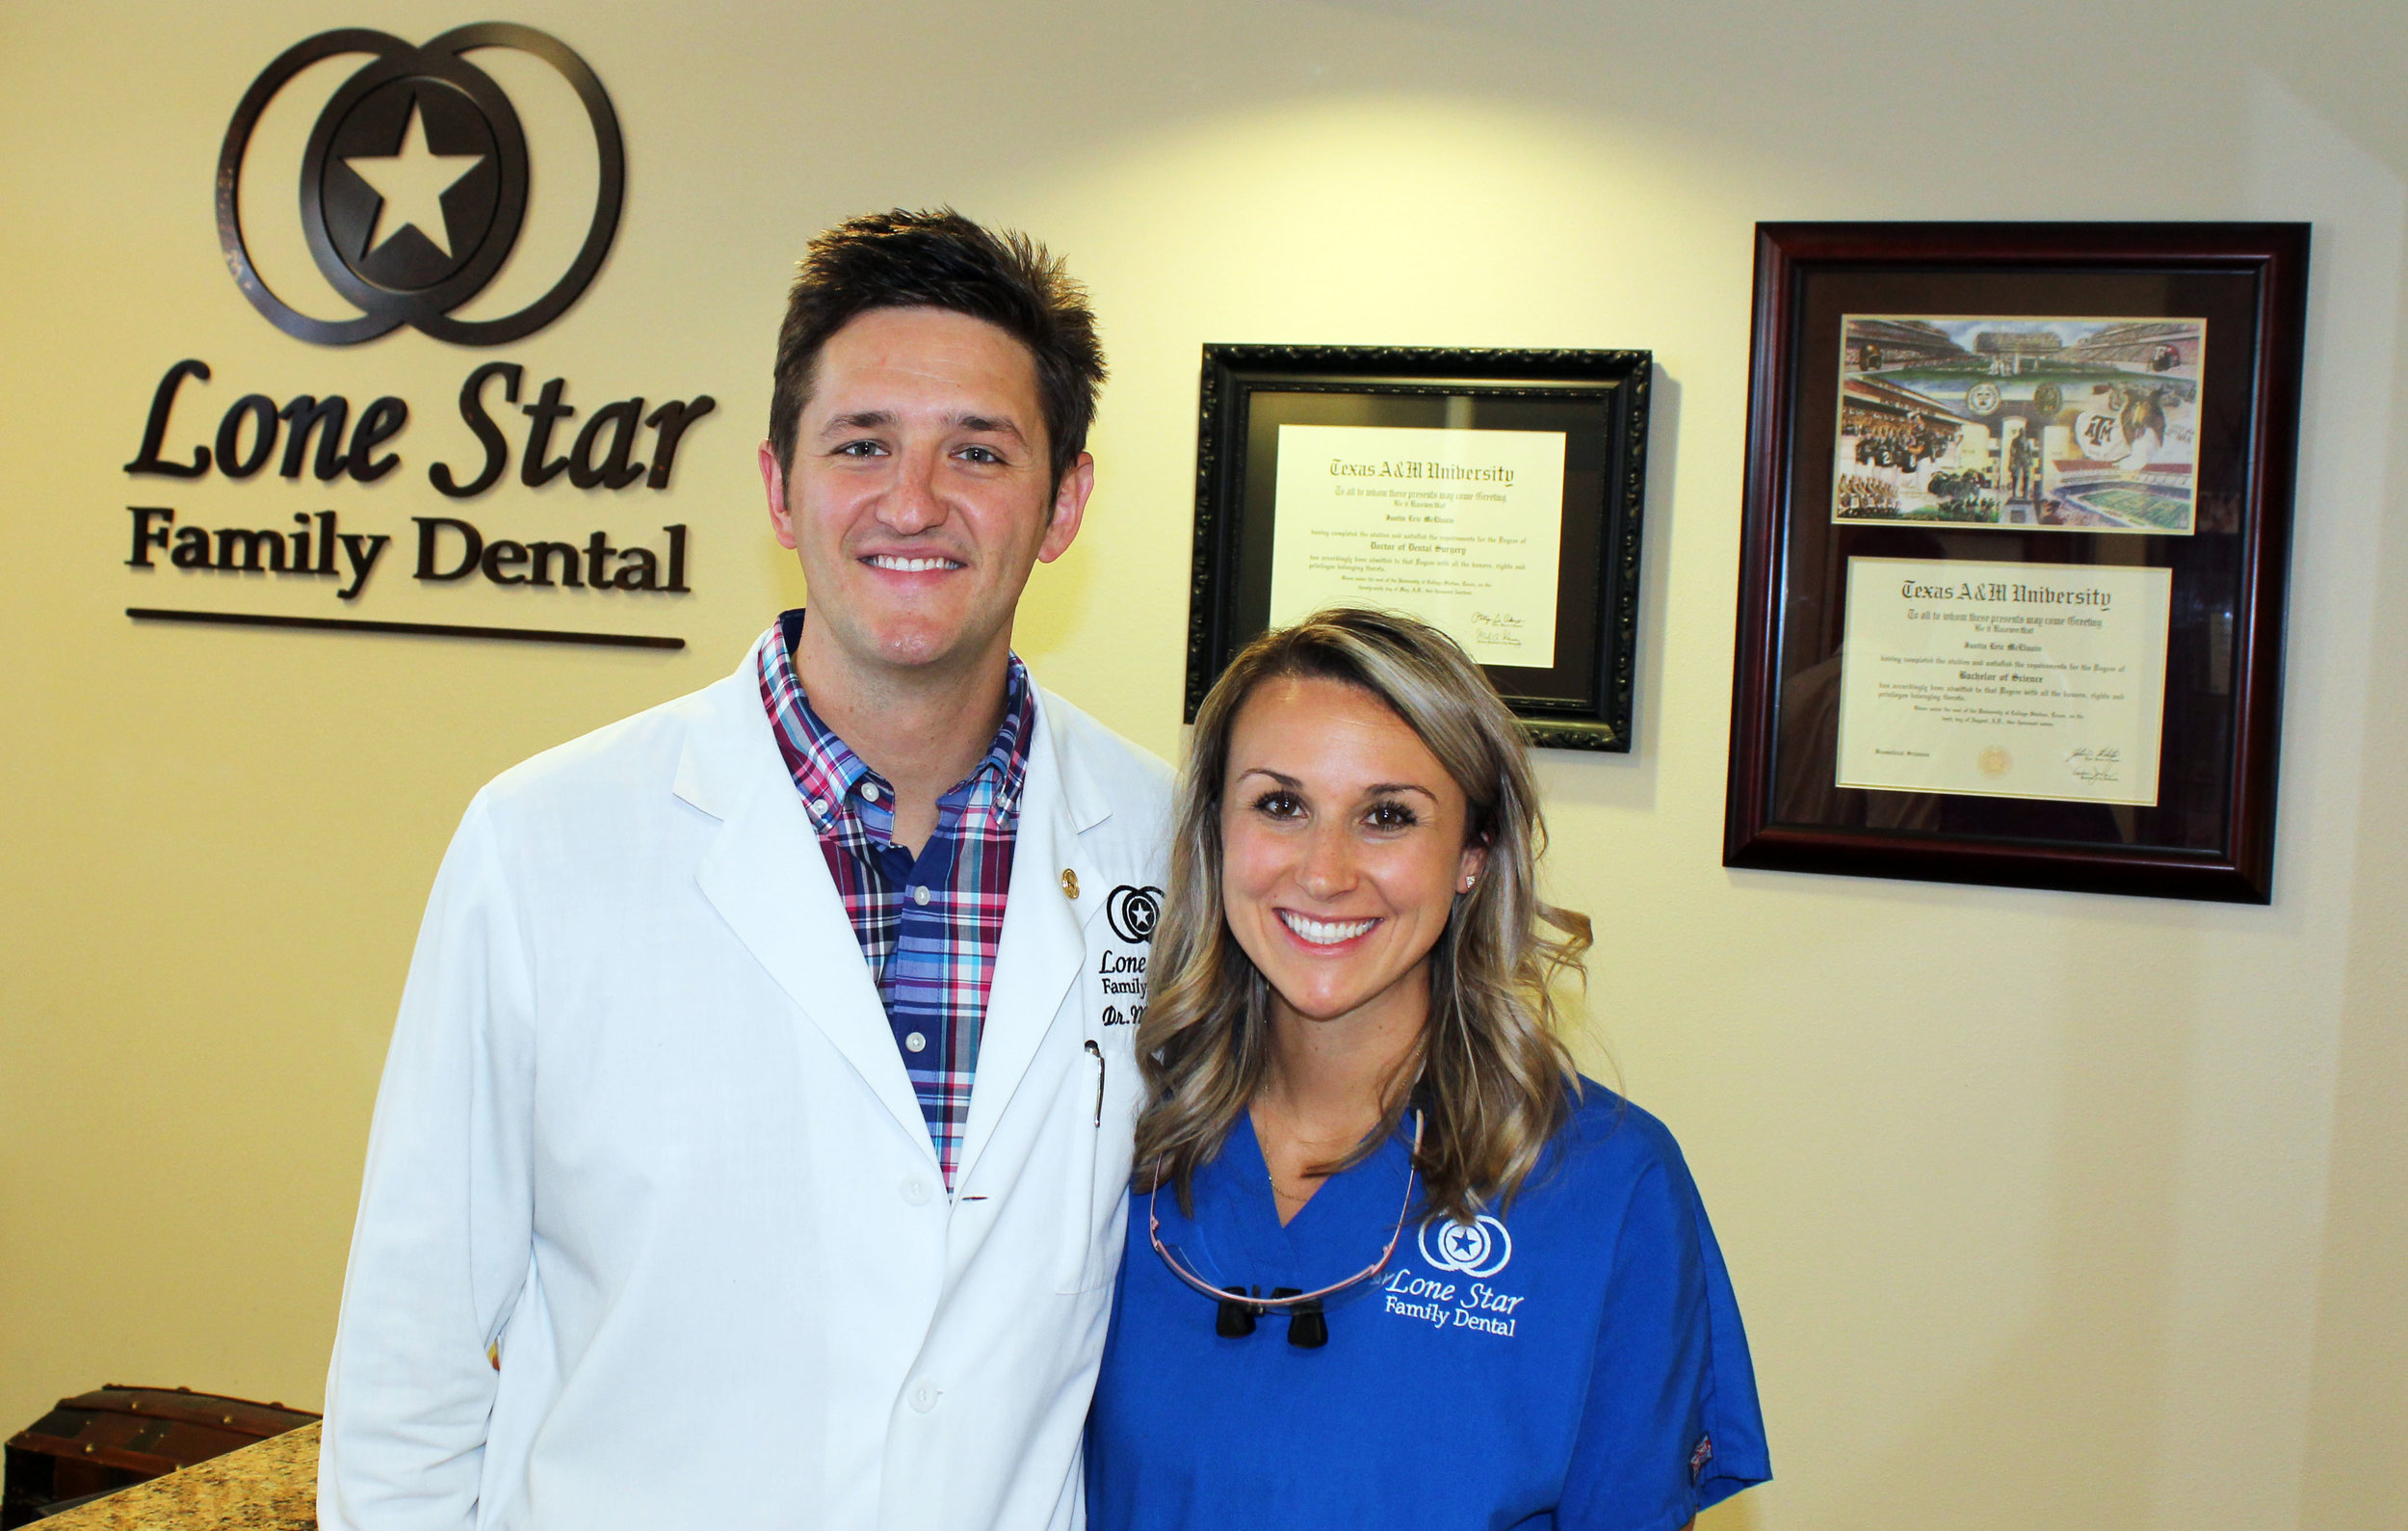 Dr. Justin McElvain and his wife Paige. Paige is one of two dental hygienists at Lone Star Family Dental.